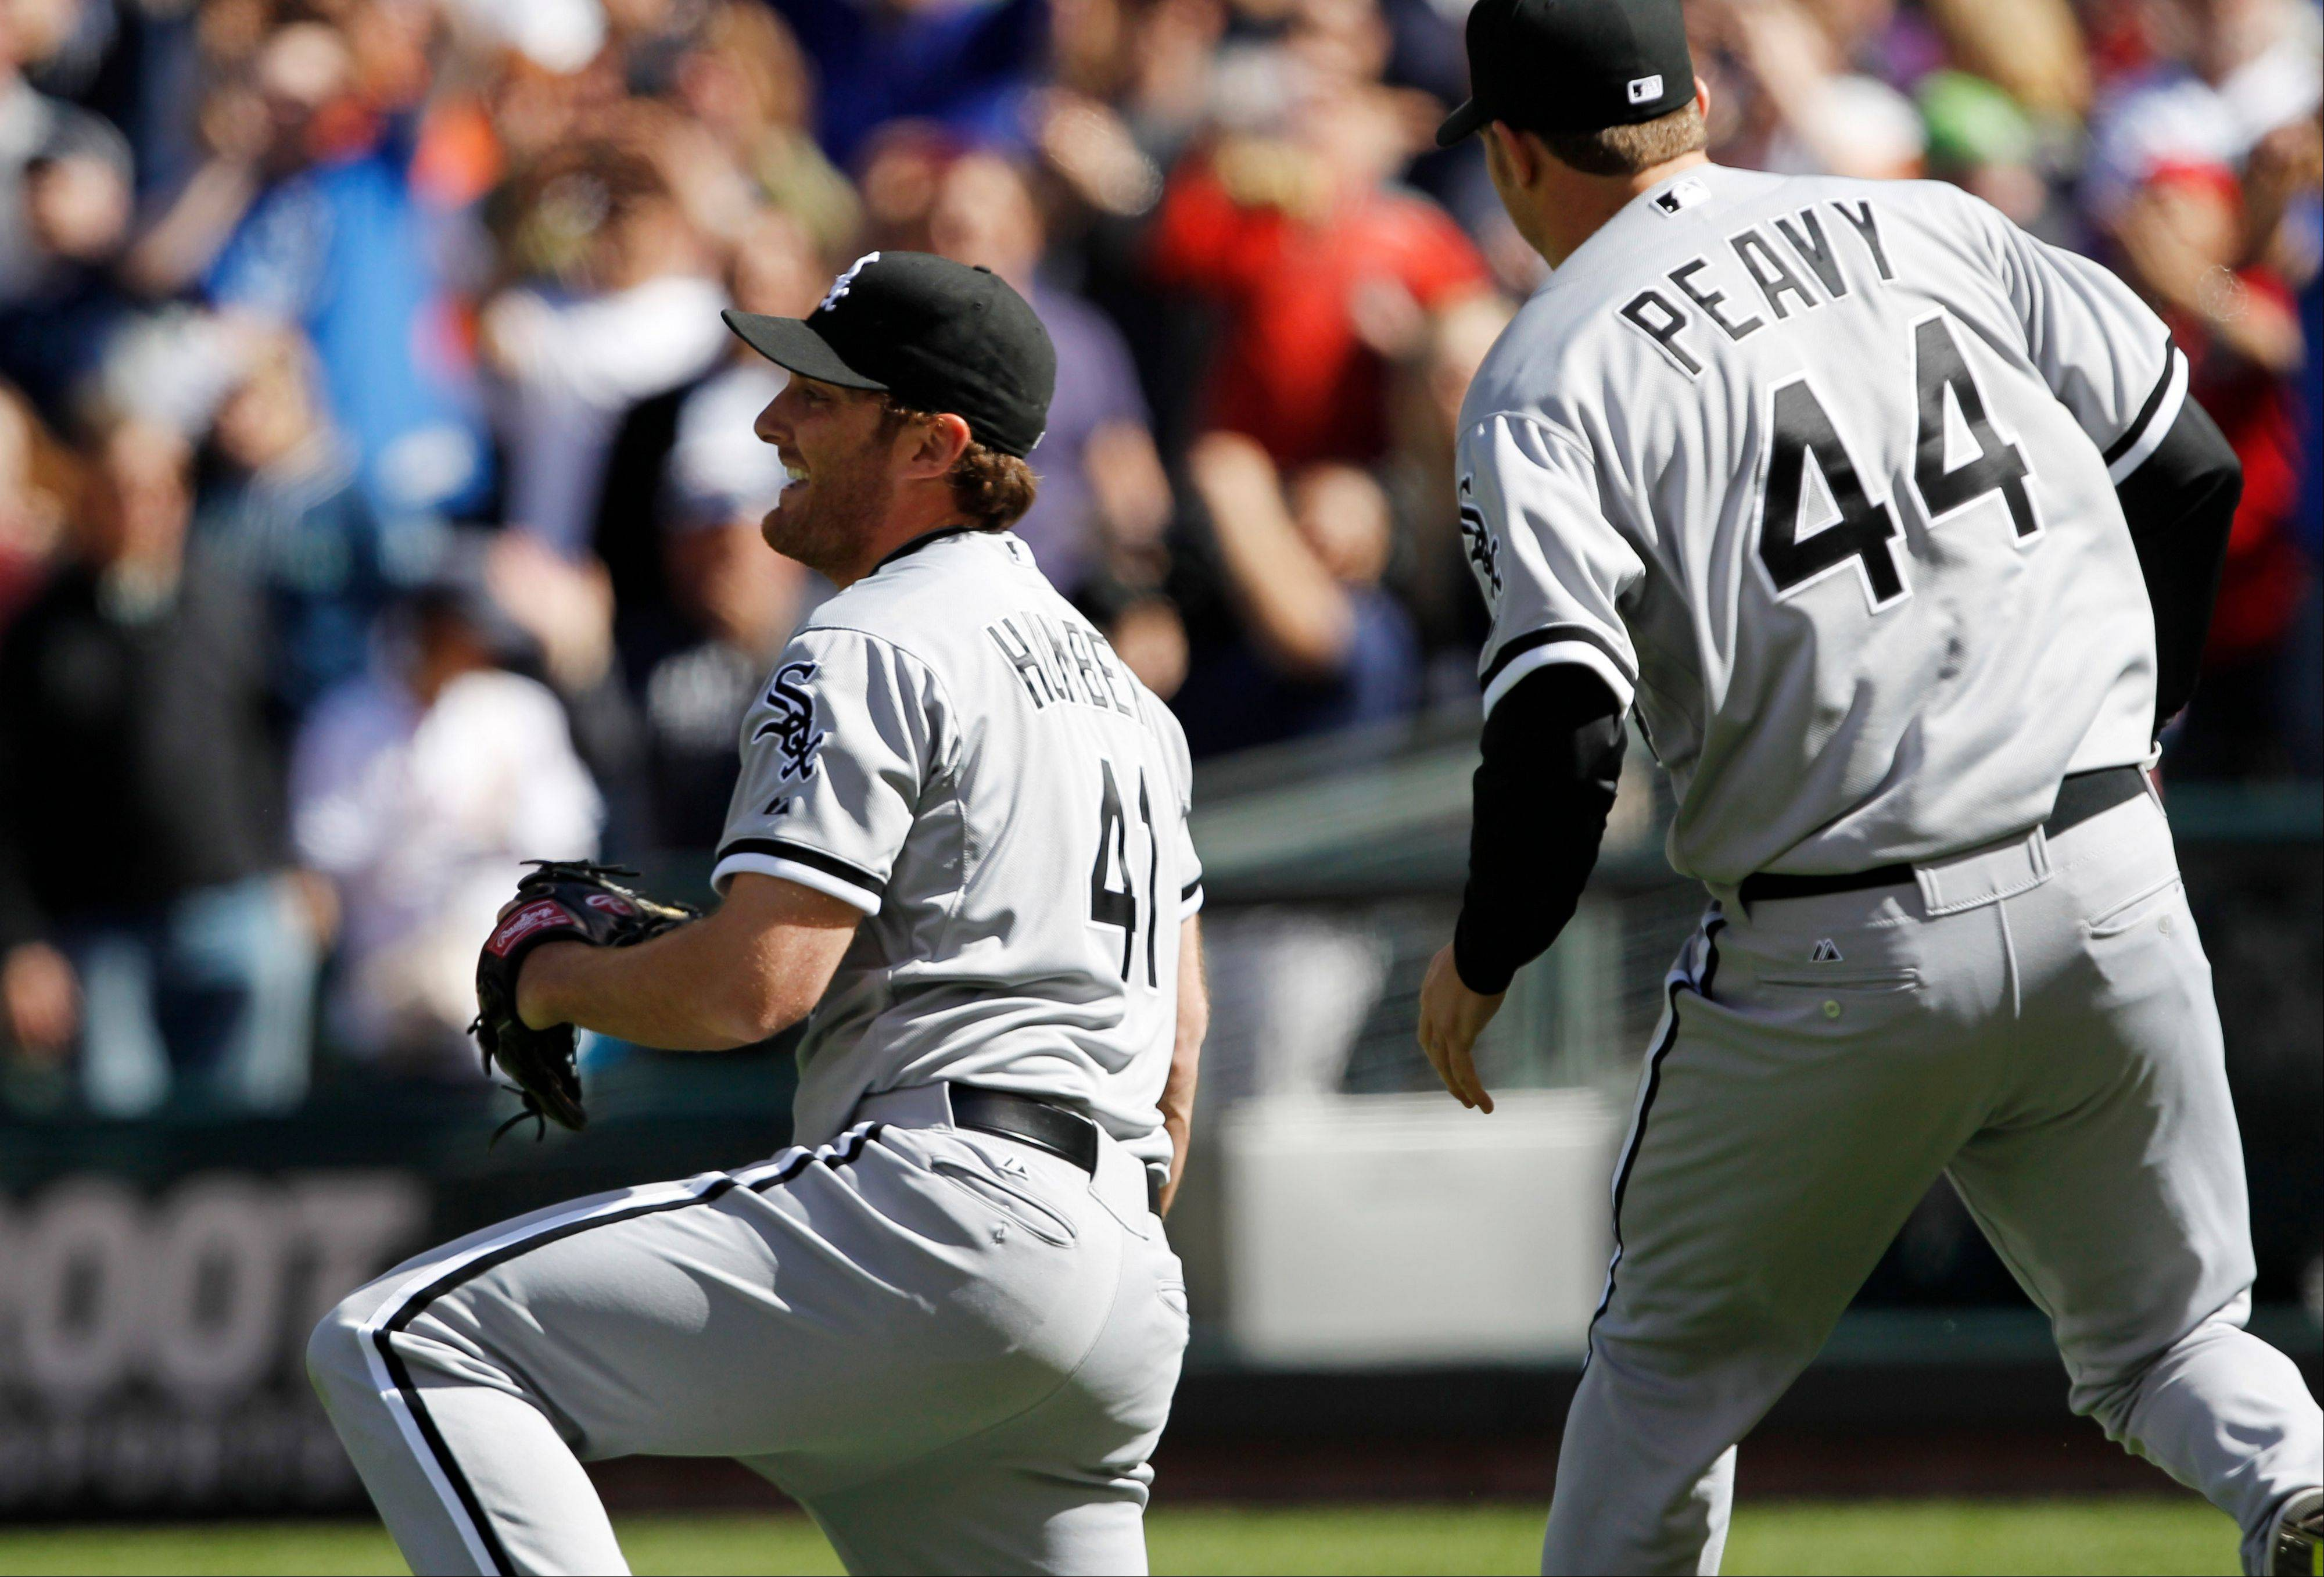 White Sox starting pitcher Philip Humber, left, reacts Saturday after pitching a perfect game.